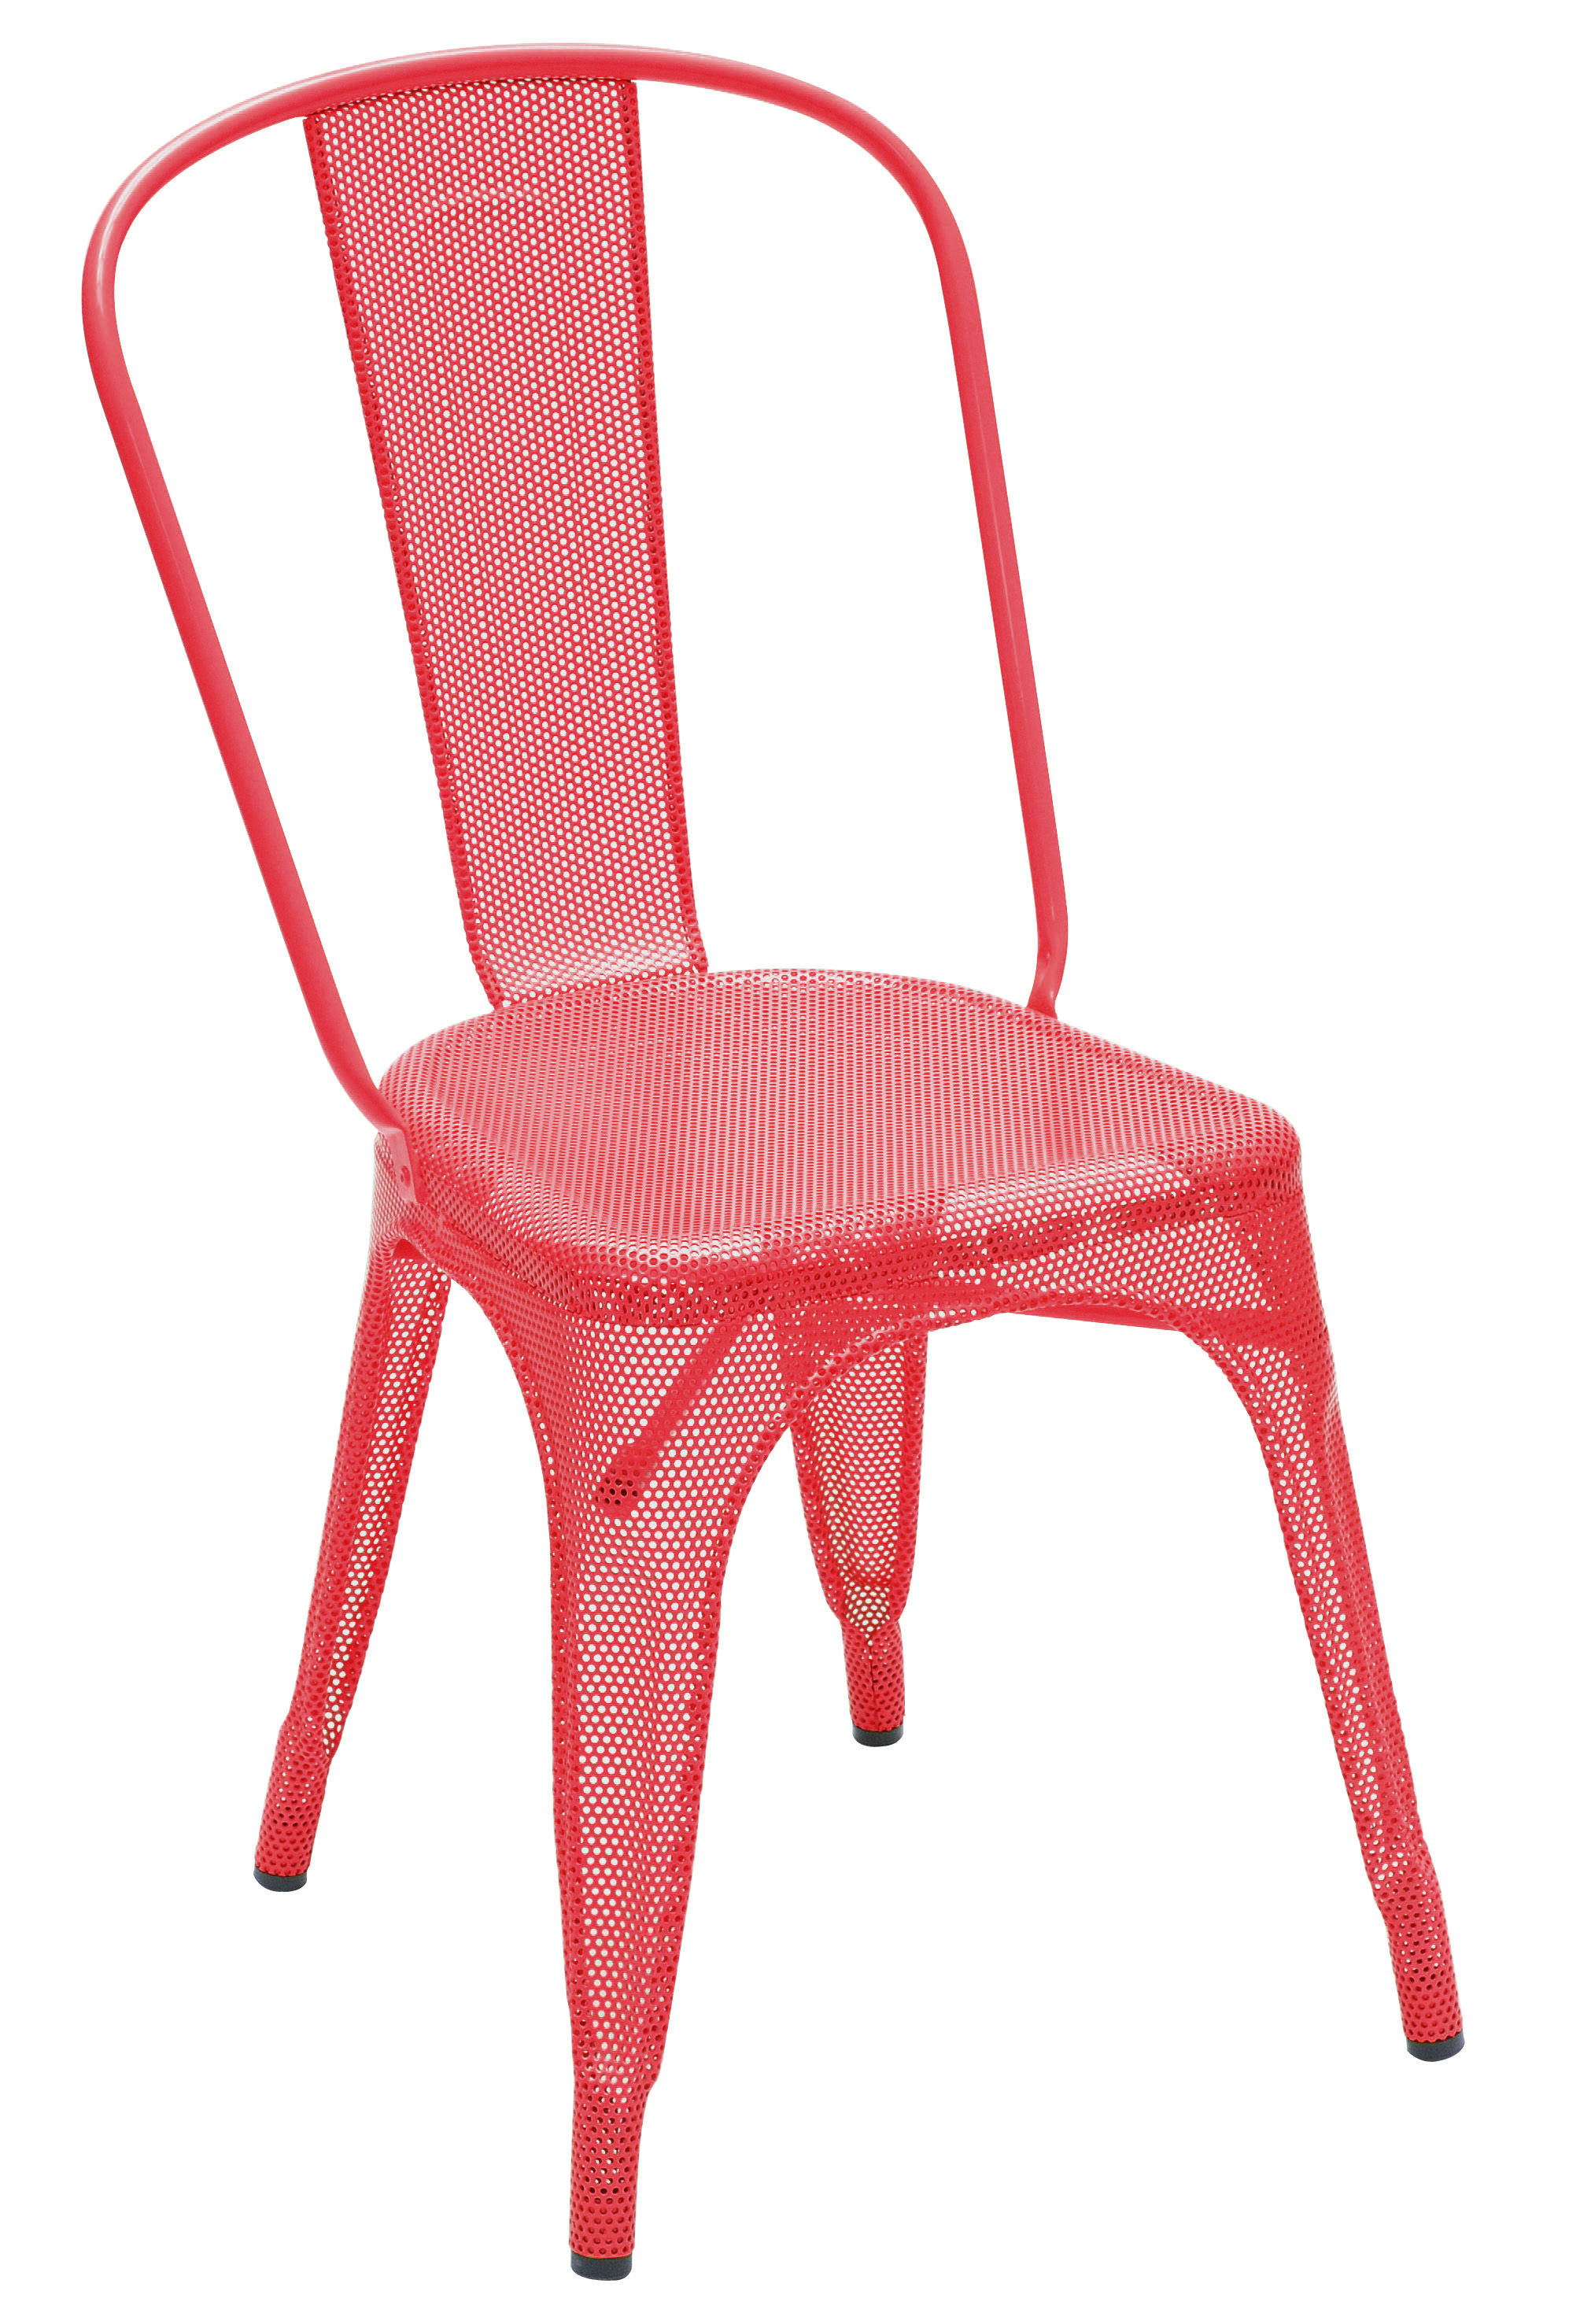 Furniture - Chairs - A Stacking chair - Punched steel- Glossy colour by Tolix - Red - Lacquered stainless steel